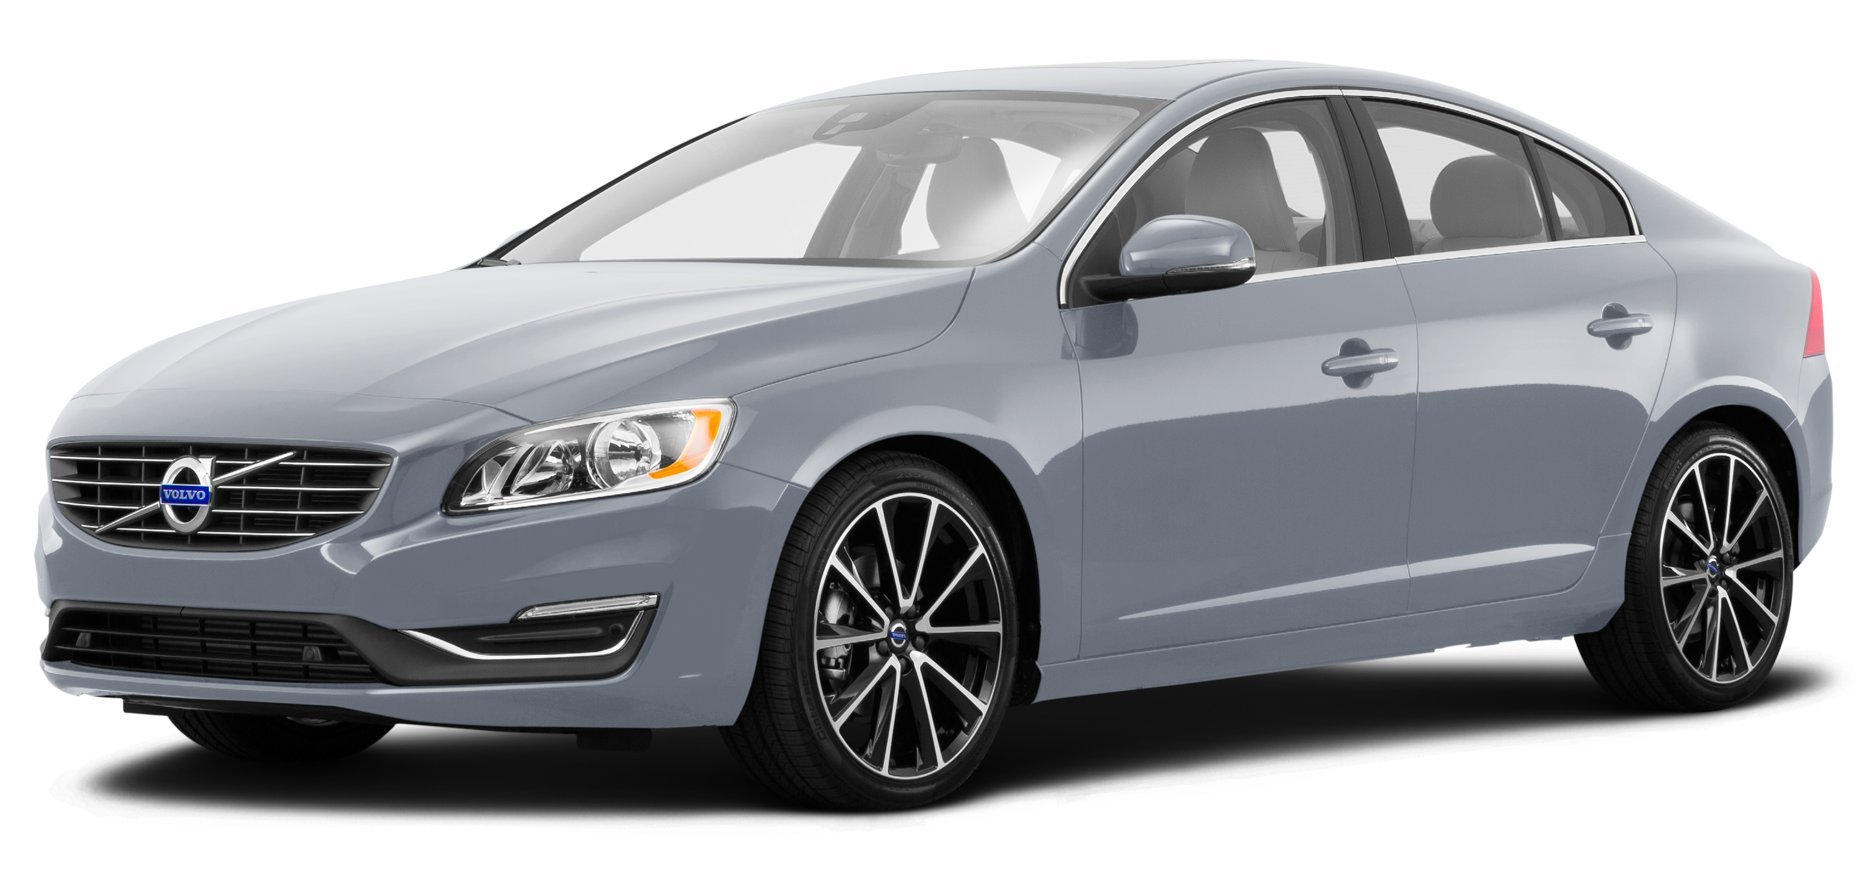 2016 volvo s60 reviews images and specs vehicles. Black Bedroom Furniture Sets. Home Design Ideas